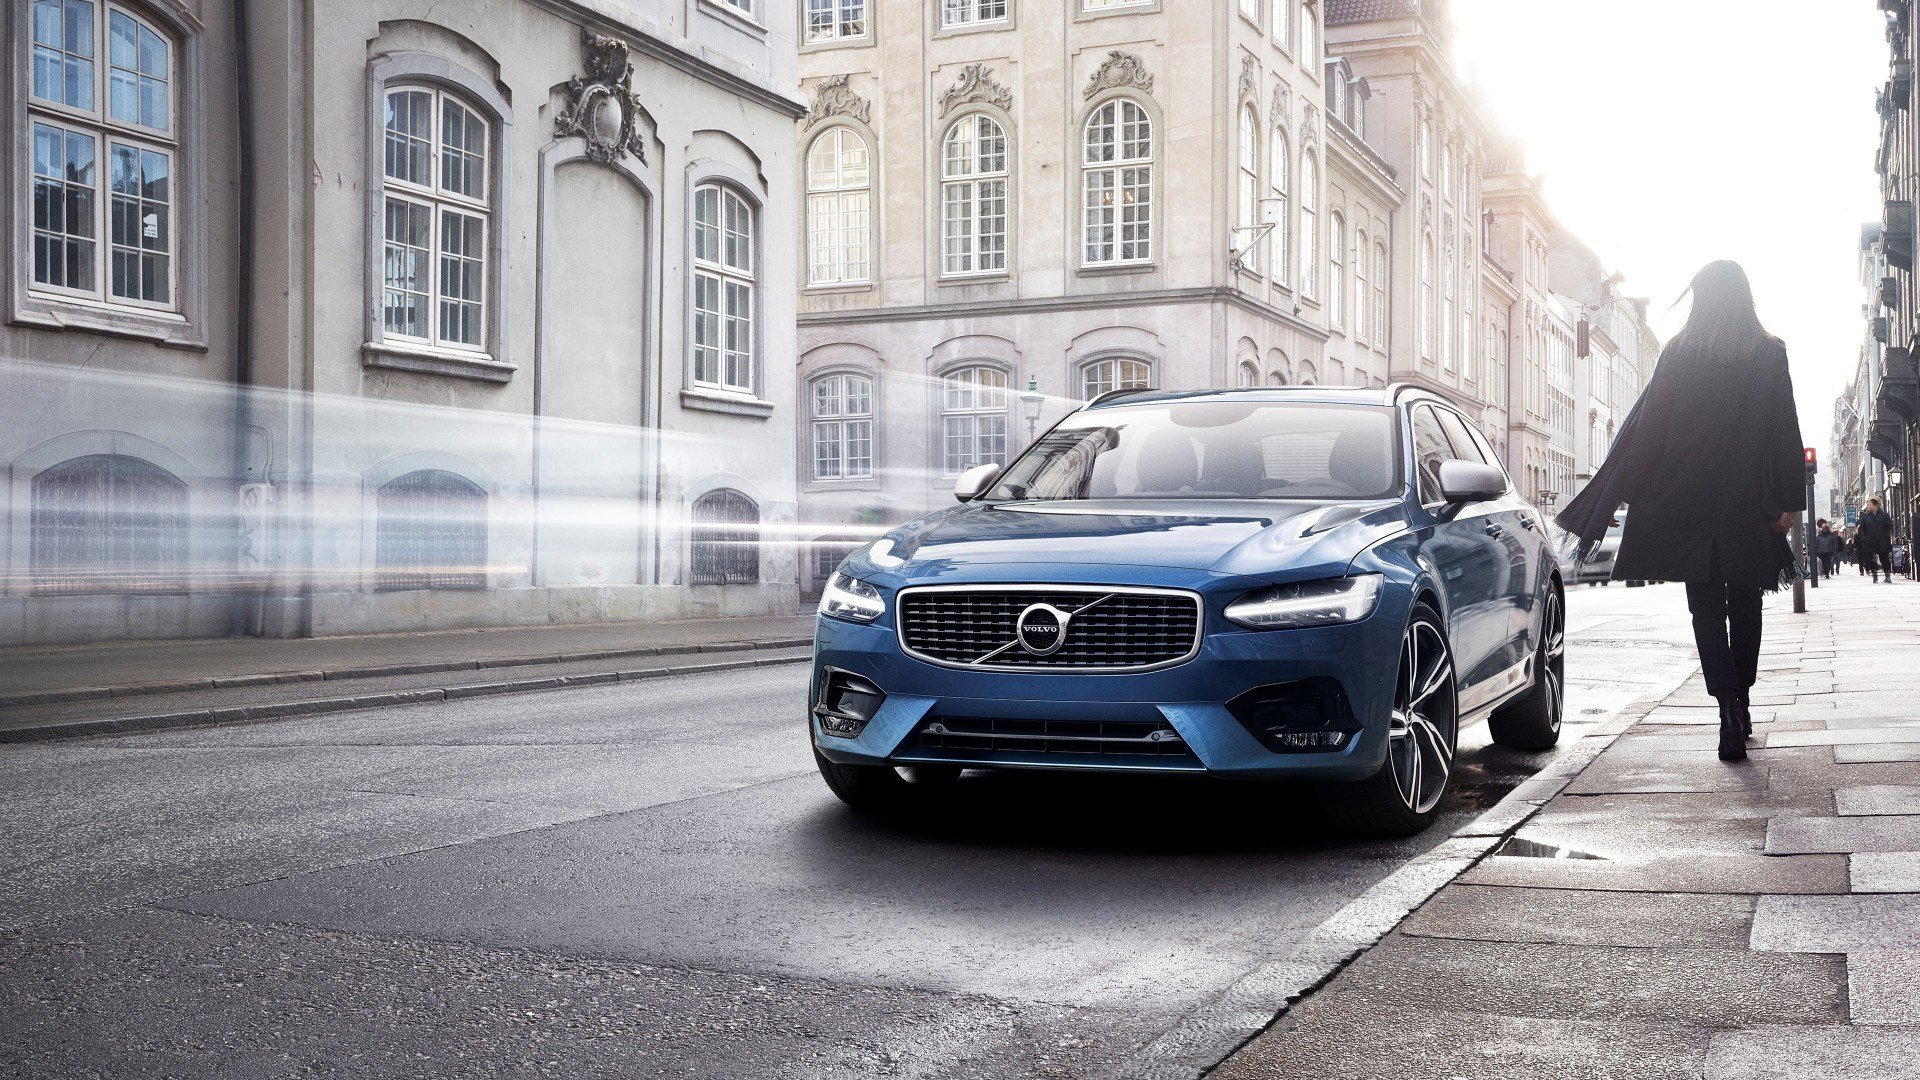 New 2017 Volvo V90 R Design Wallpaper Hd Car Wallpapers Id On This Month